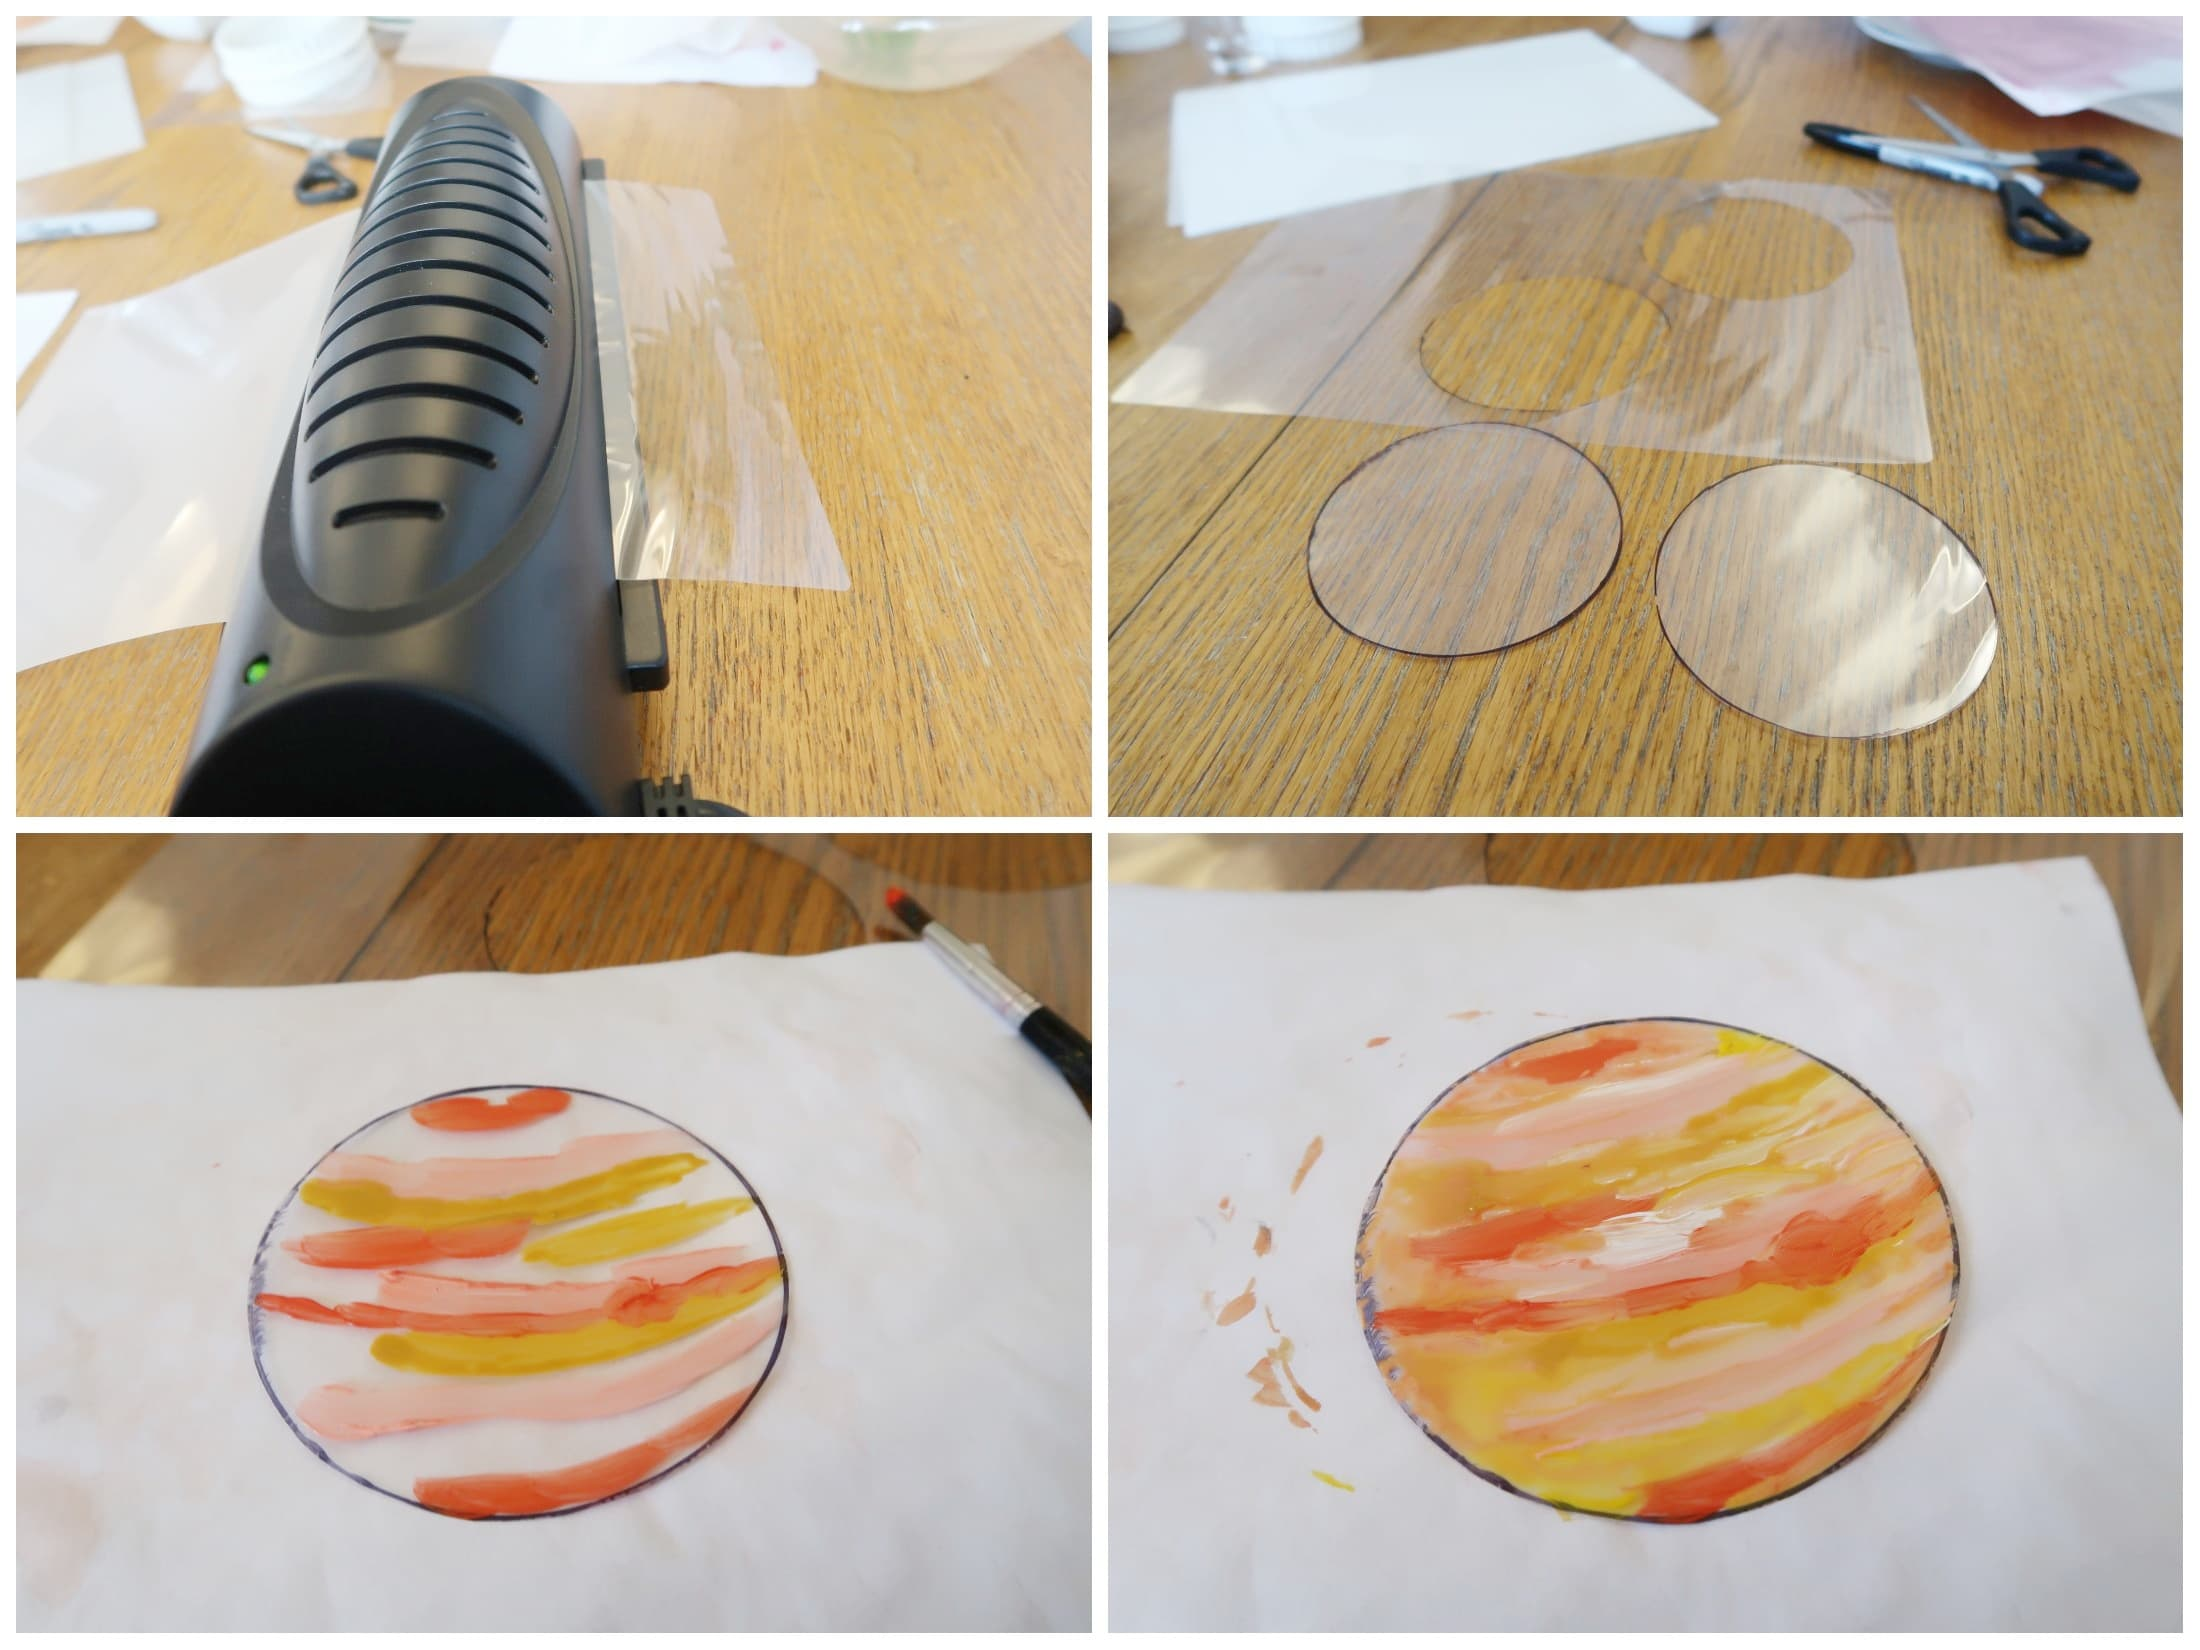 Laminator and clear plastic sheets cut into circles in a collage